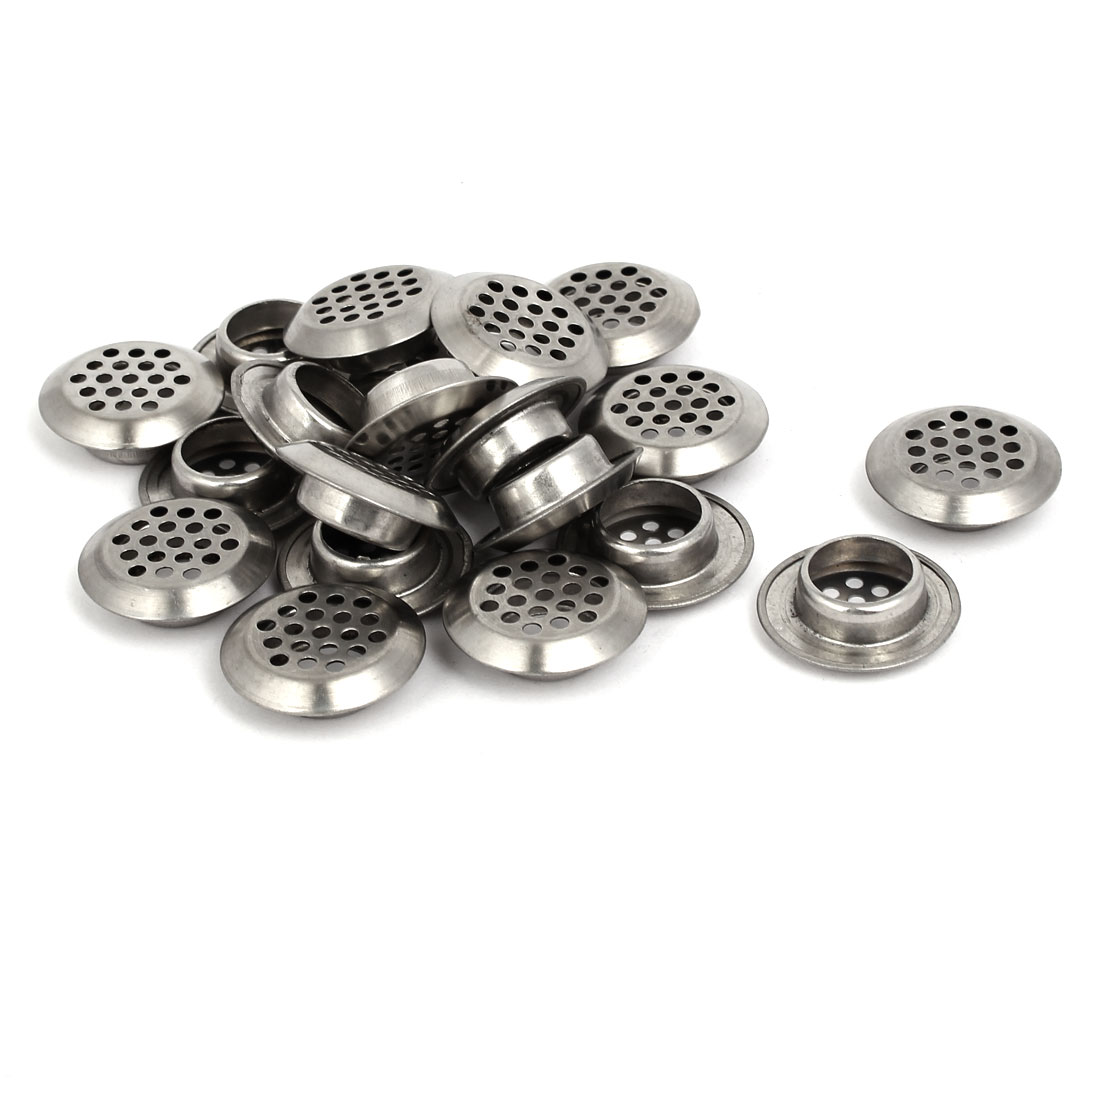 Household Stainless Steel Round Shaped Mesh Hole Air Vents Louver 19mm Dia 20pcs